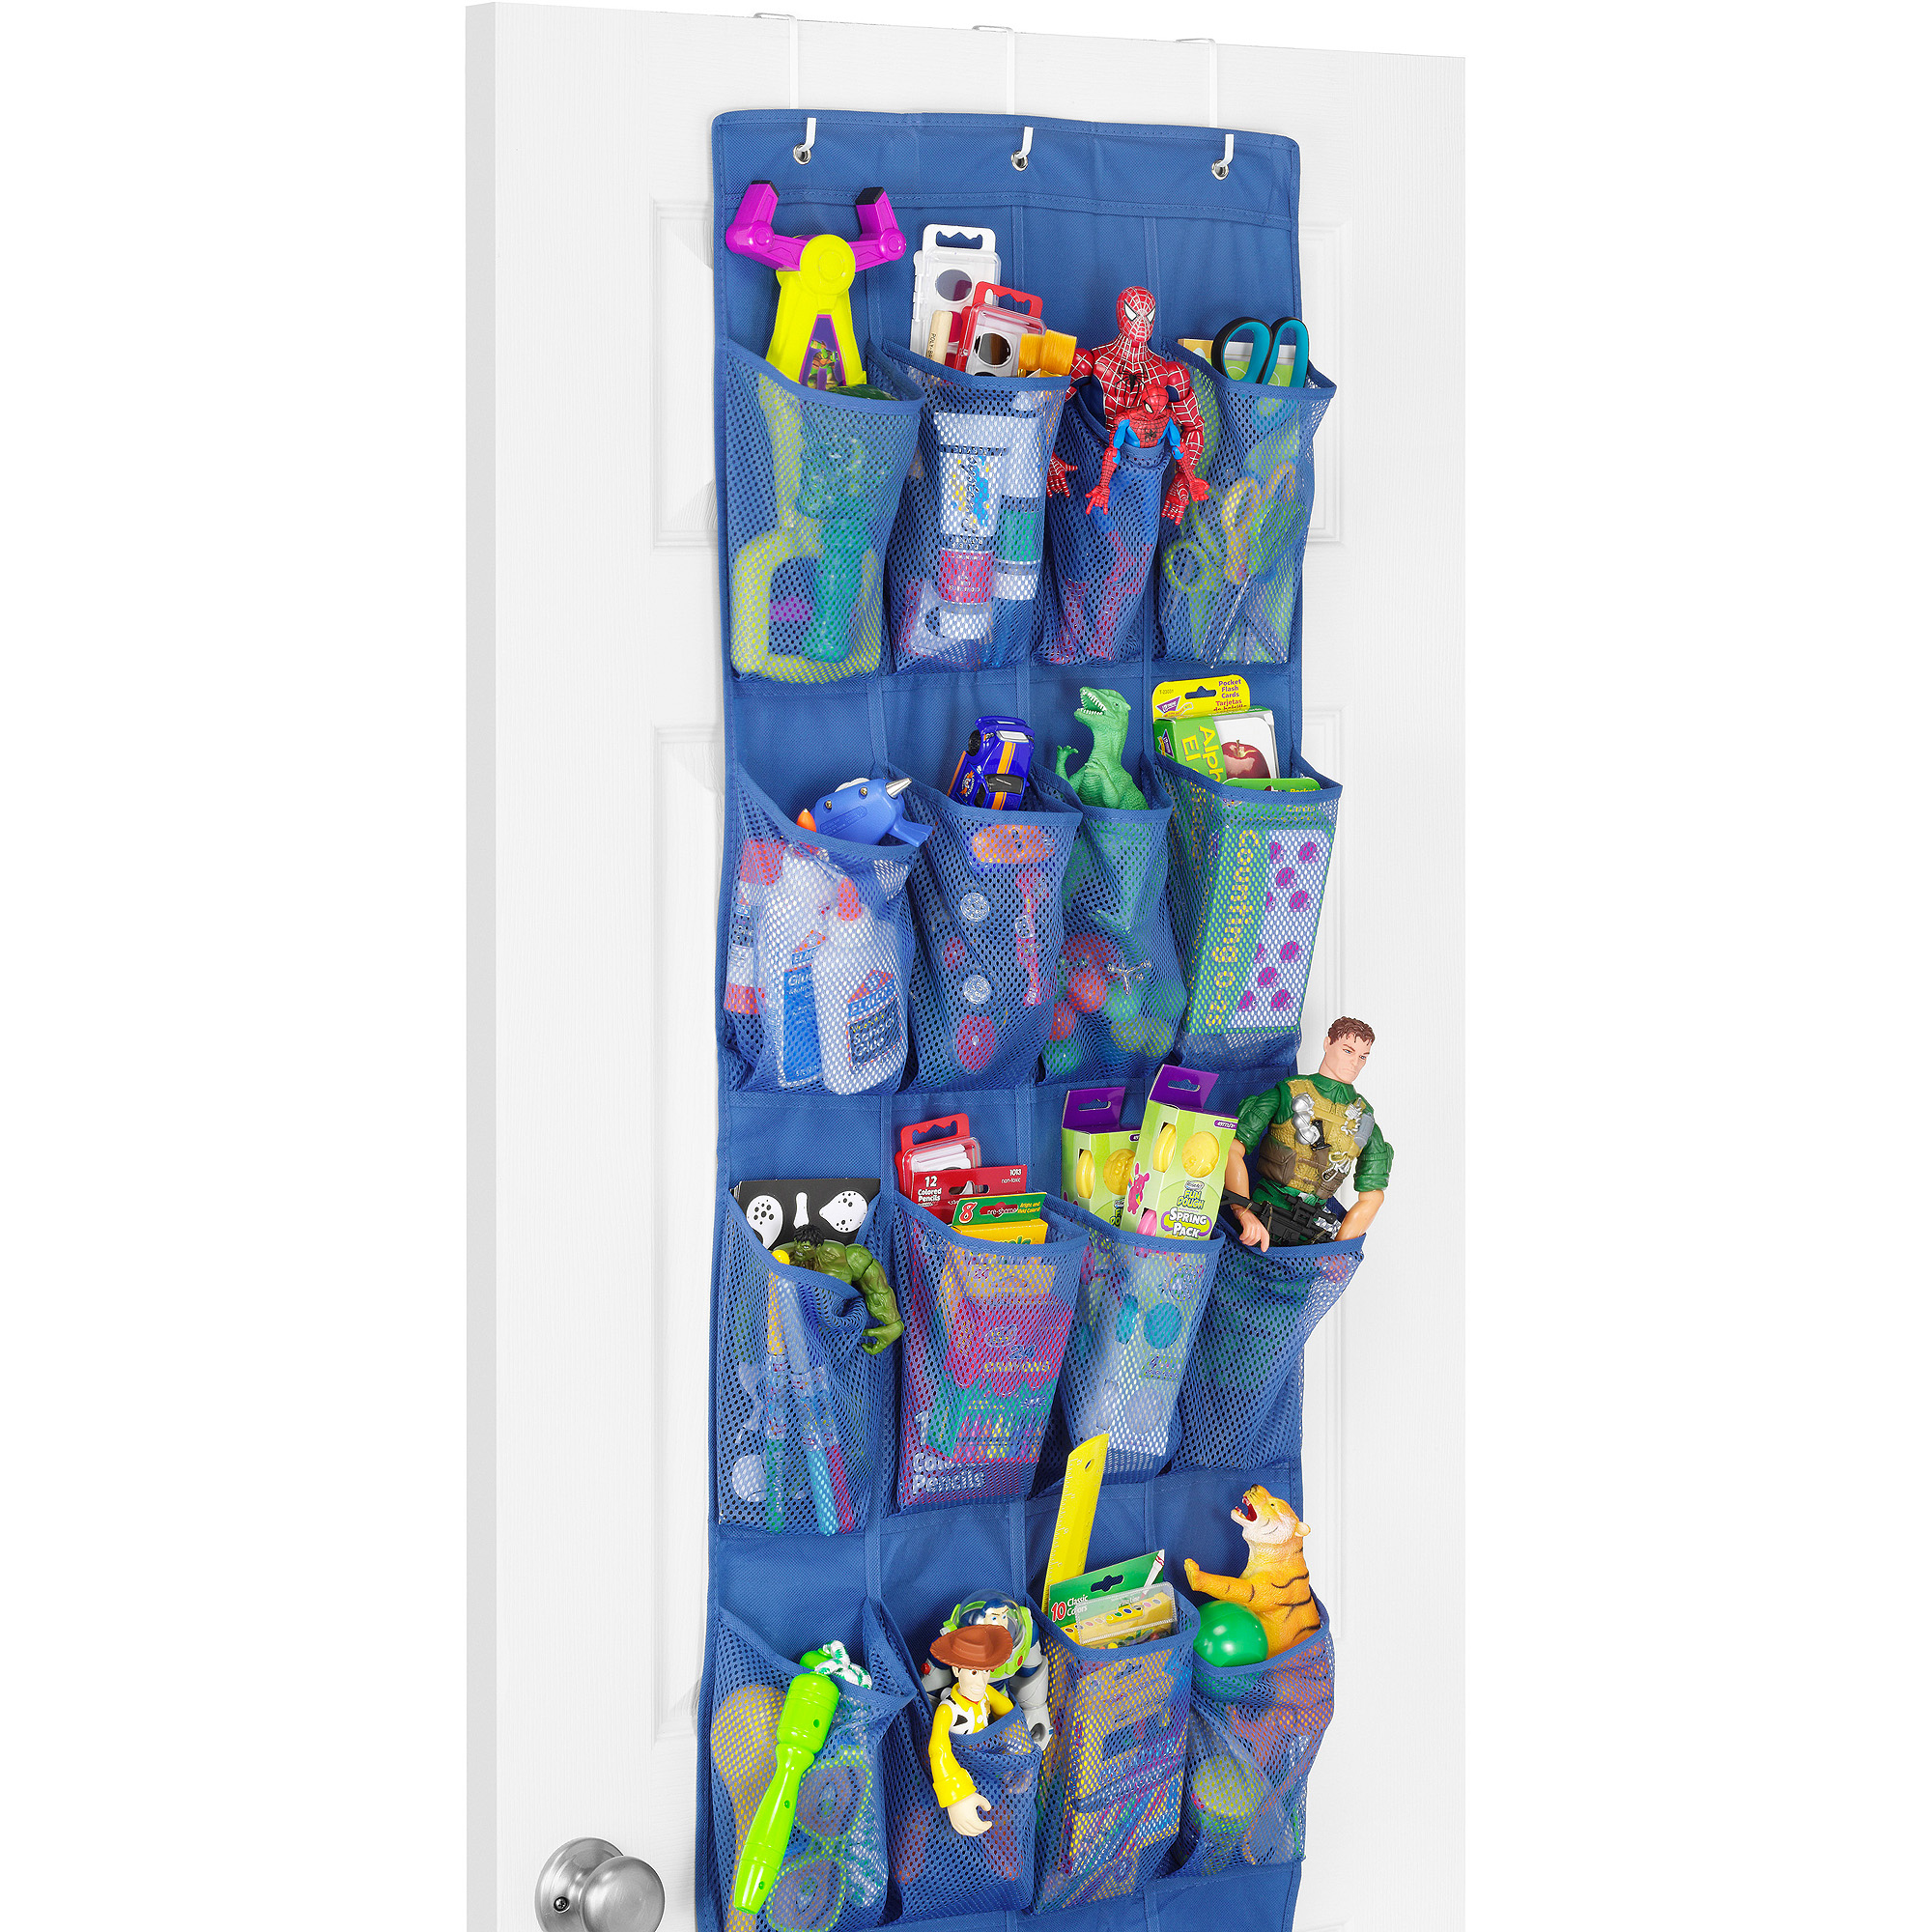 Whitmor Blue Over-the-Door Shoe Organizer